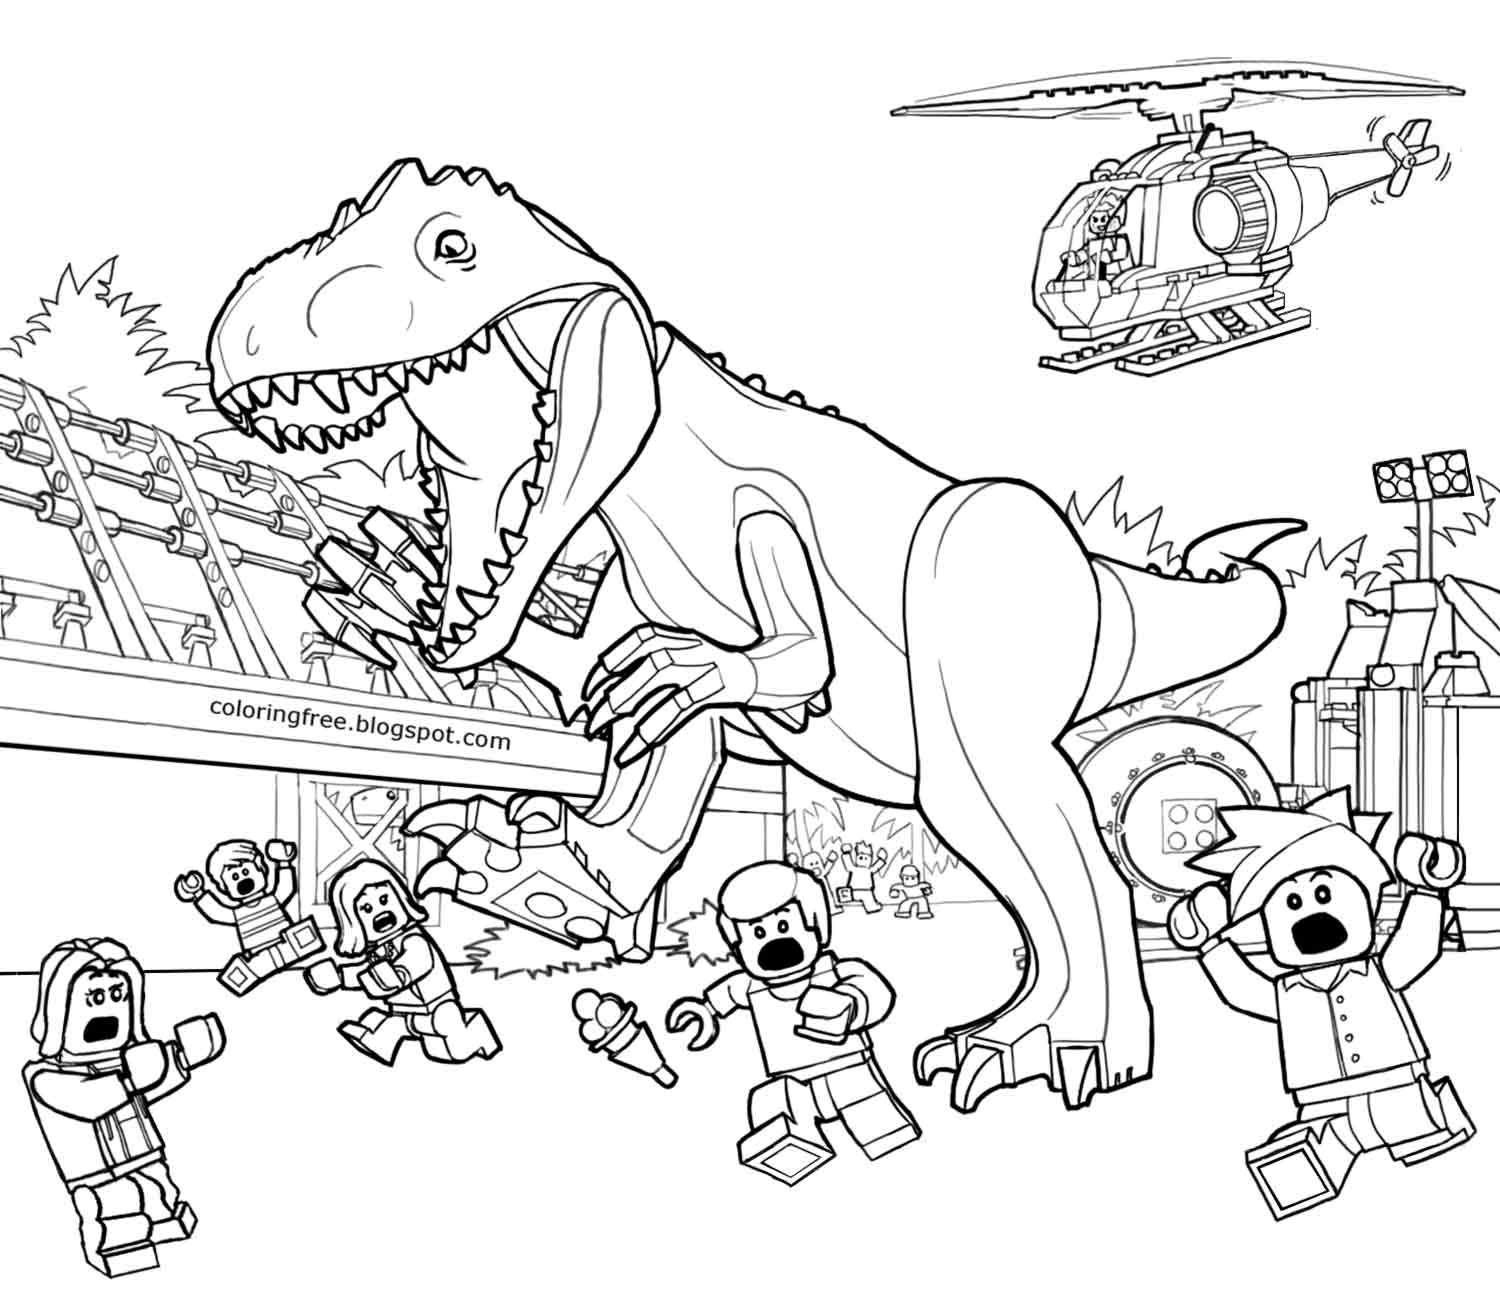 herbivore dinosaur coloring pages - photo#35